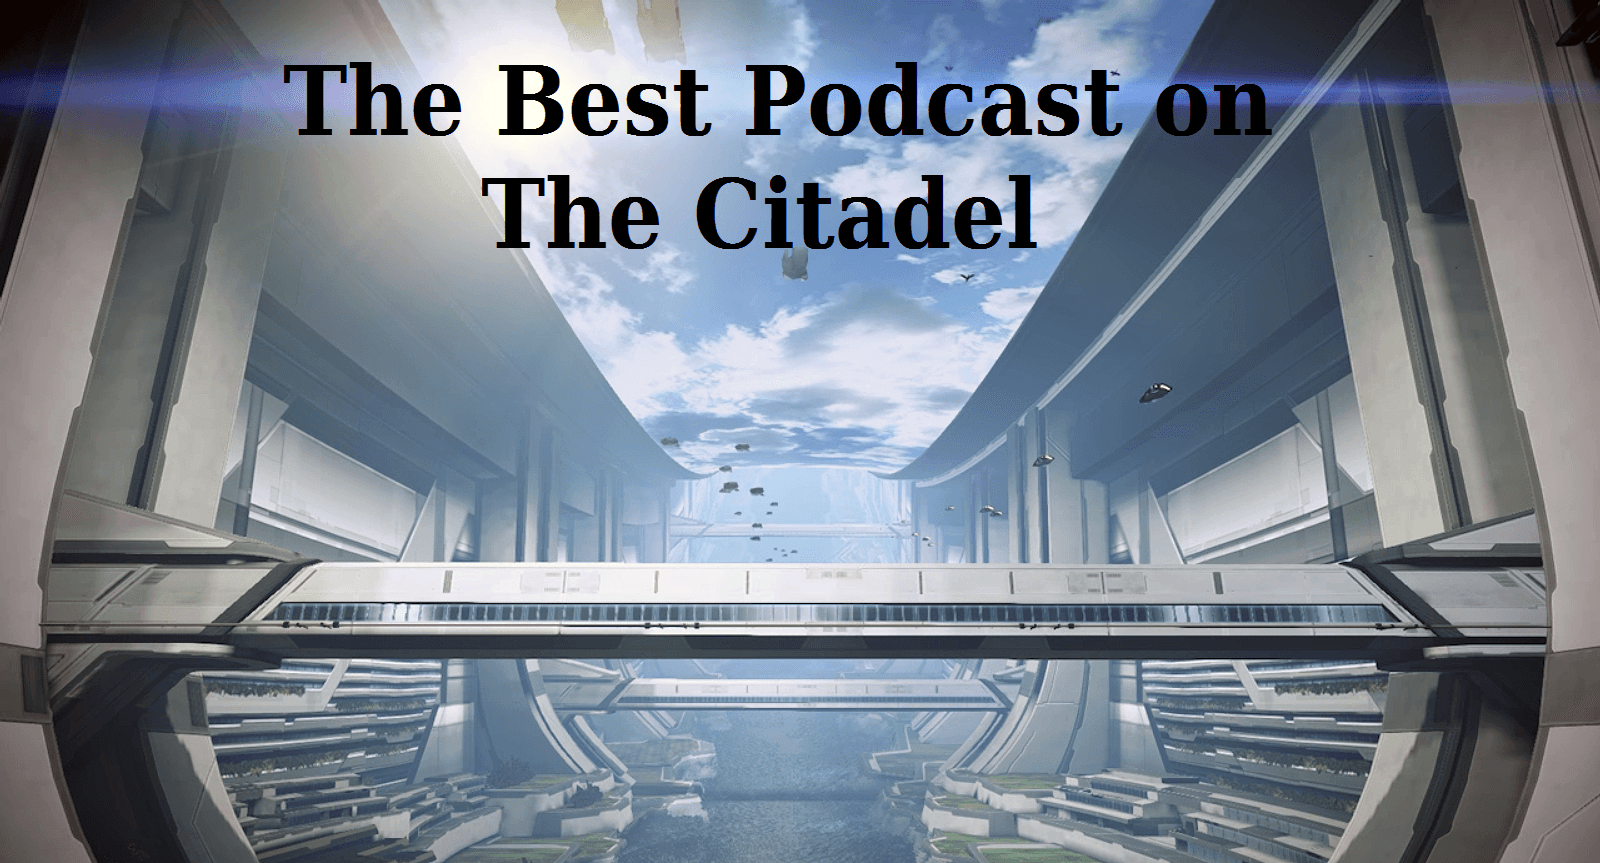 The Best Podcast on the Citadel, Episode 28